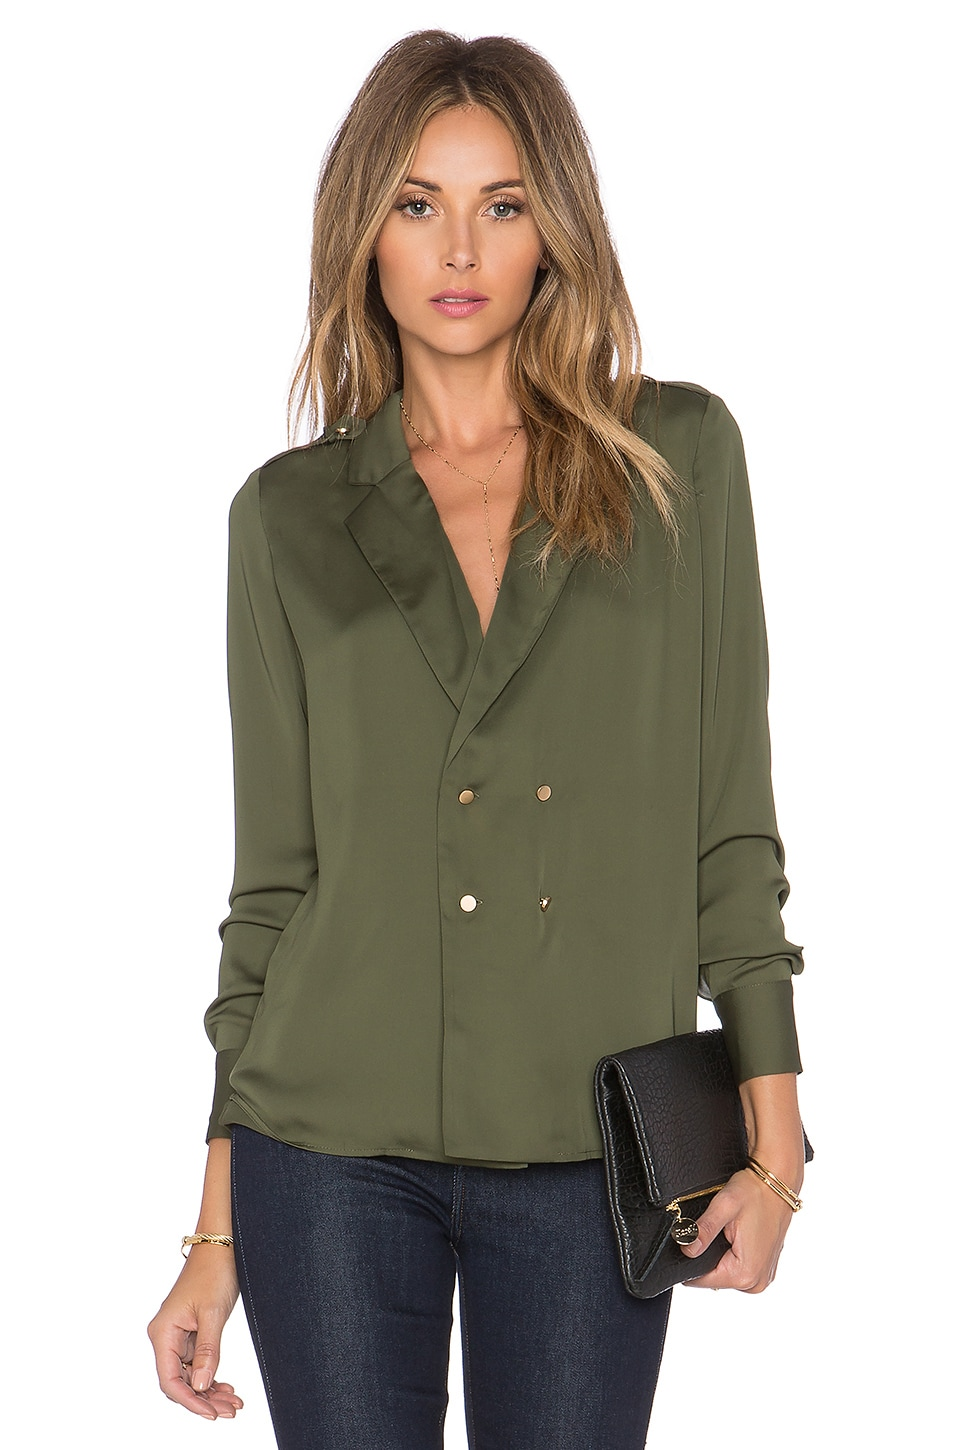 L'Academie The Military Blouse in Army